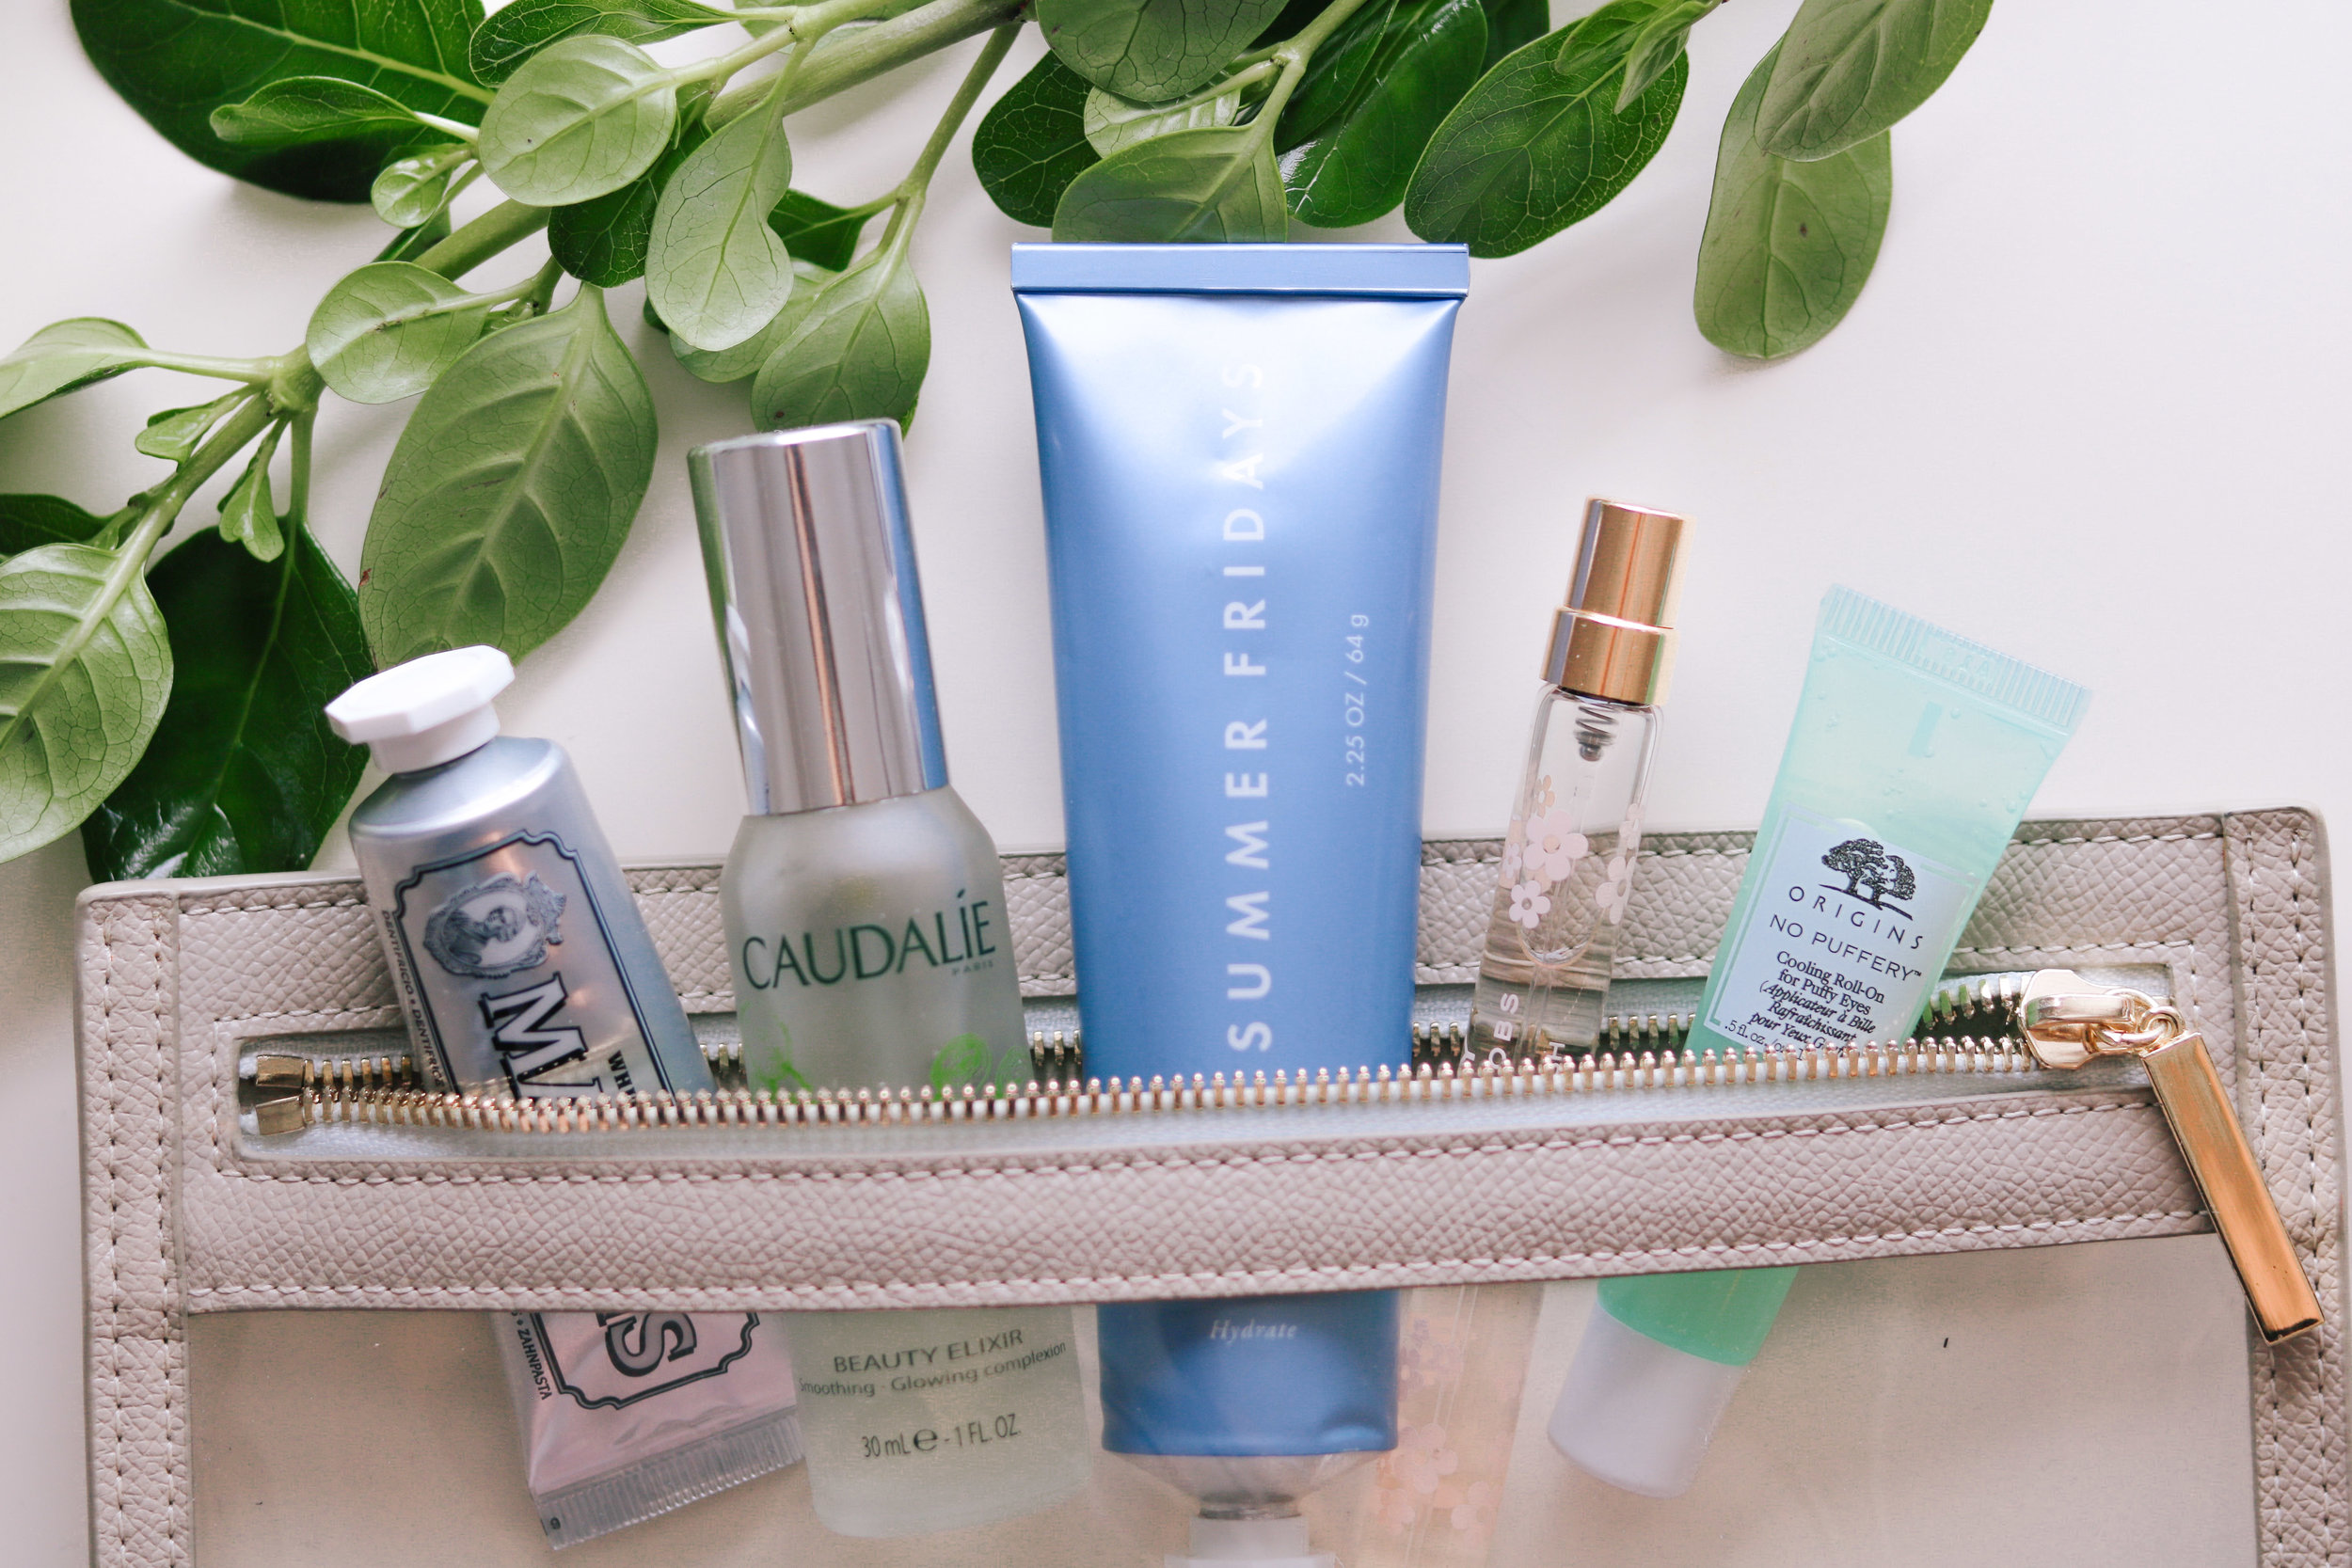 Travel Toiletry Bag Must Haves - by Courtney Brown